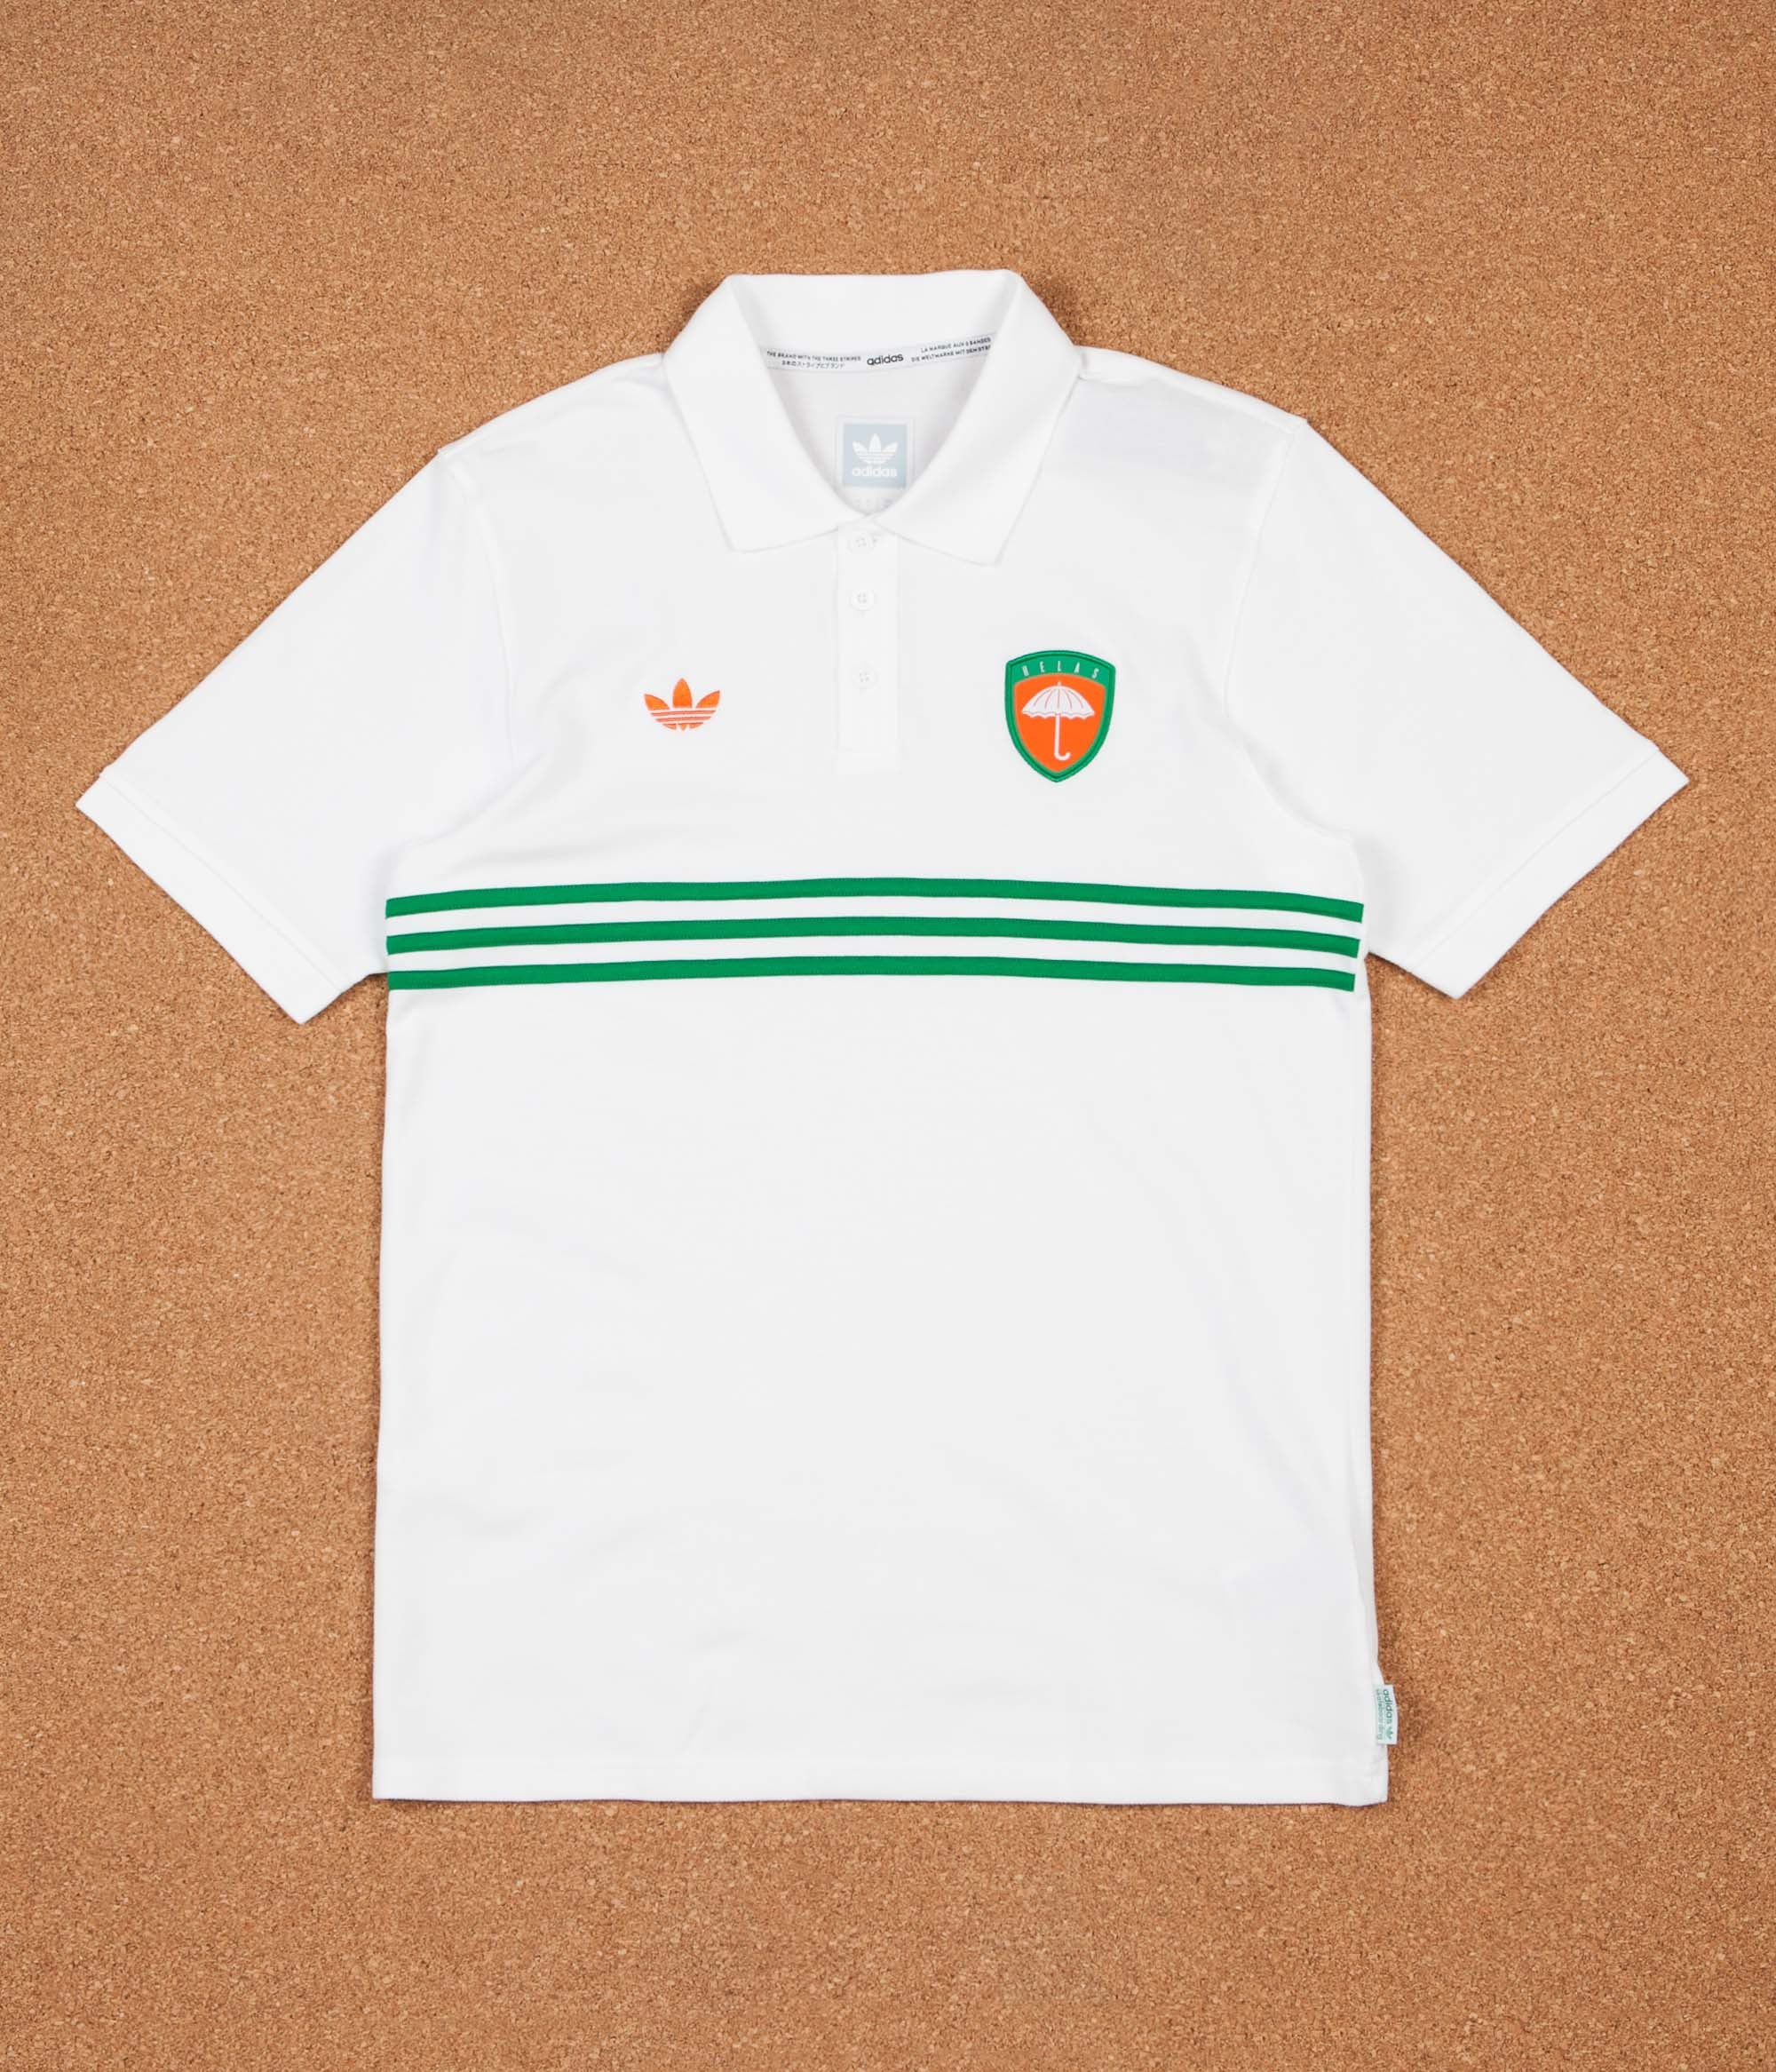 Adidas x Helas Polo Shirt - White / Green